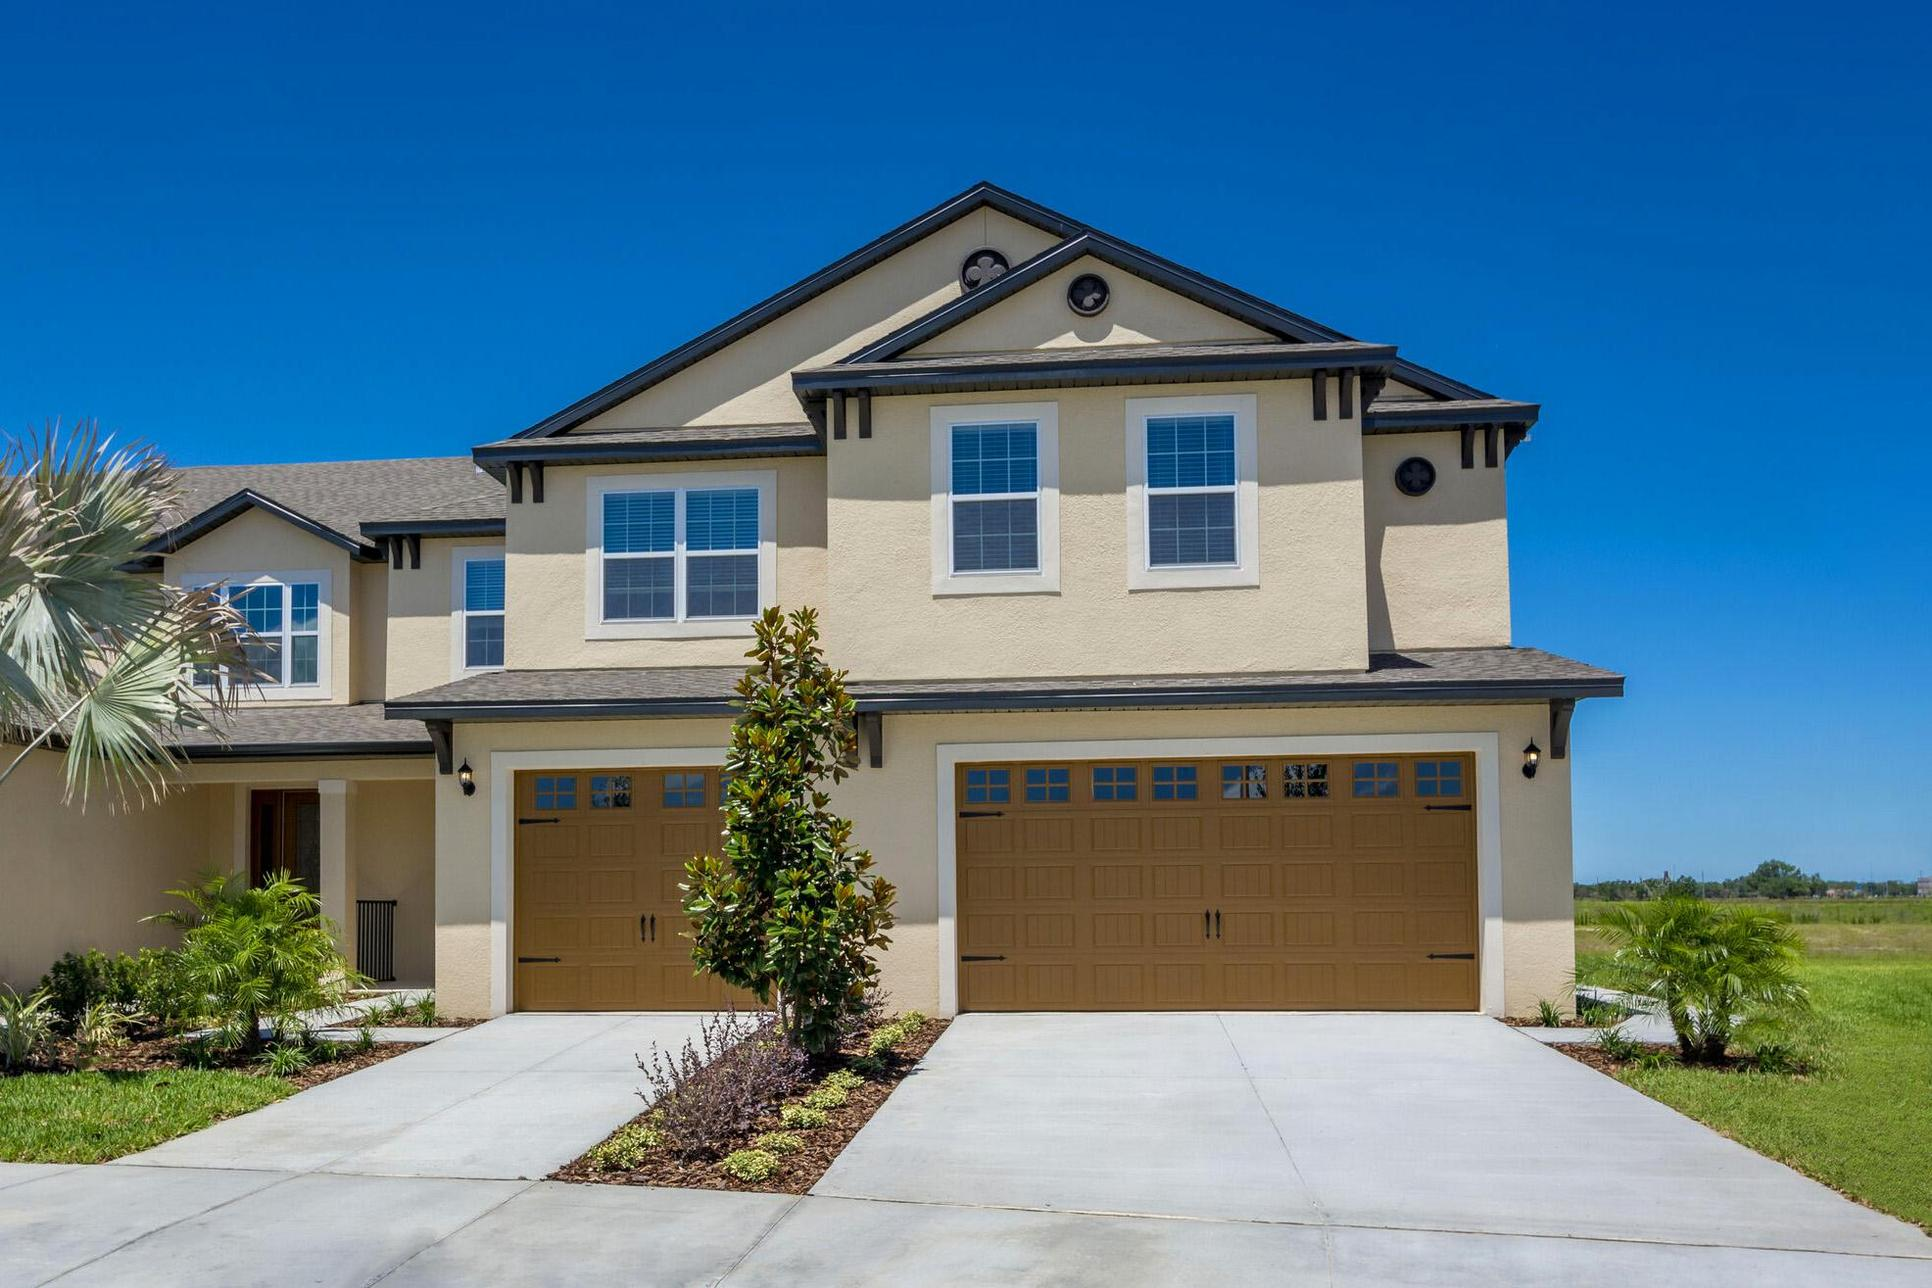 The Tuscany by LGI Homes:This two-story home is now available in the amenity-rich community of Mirada